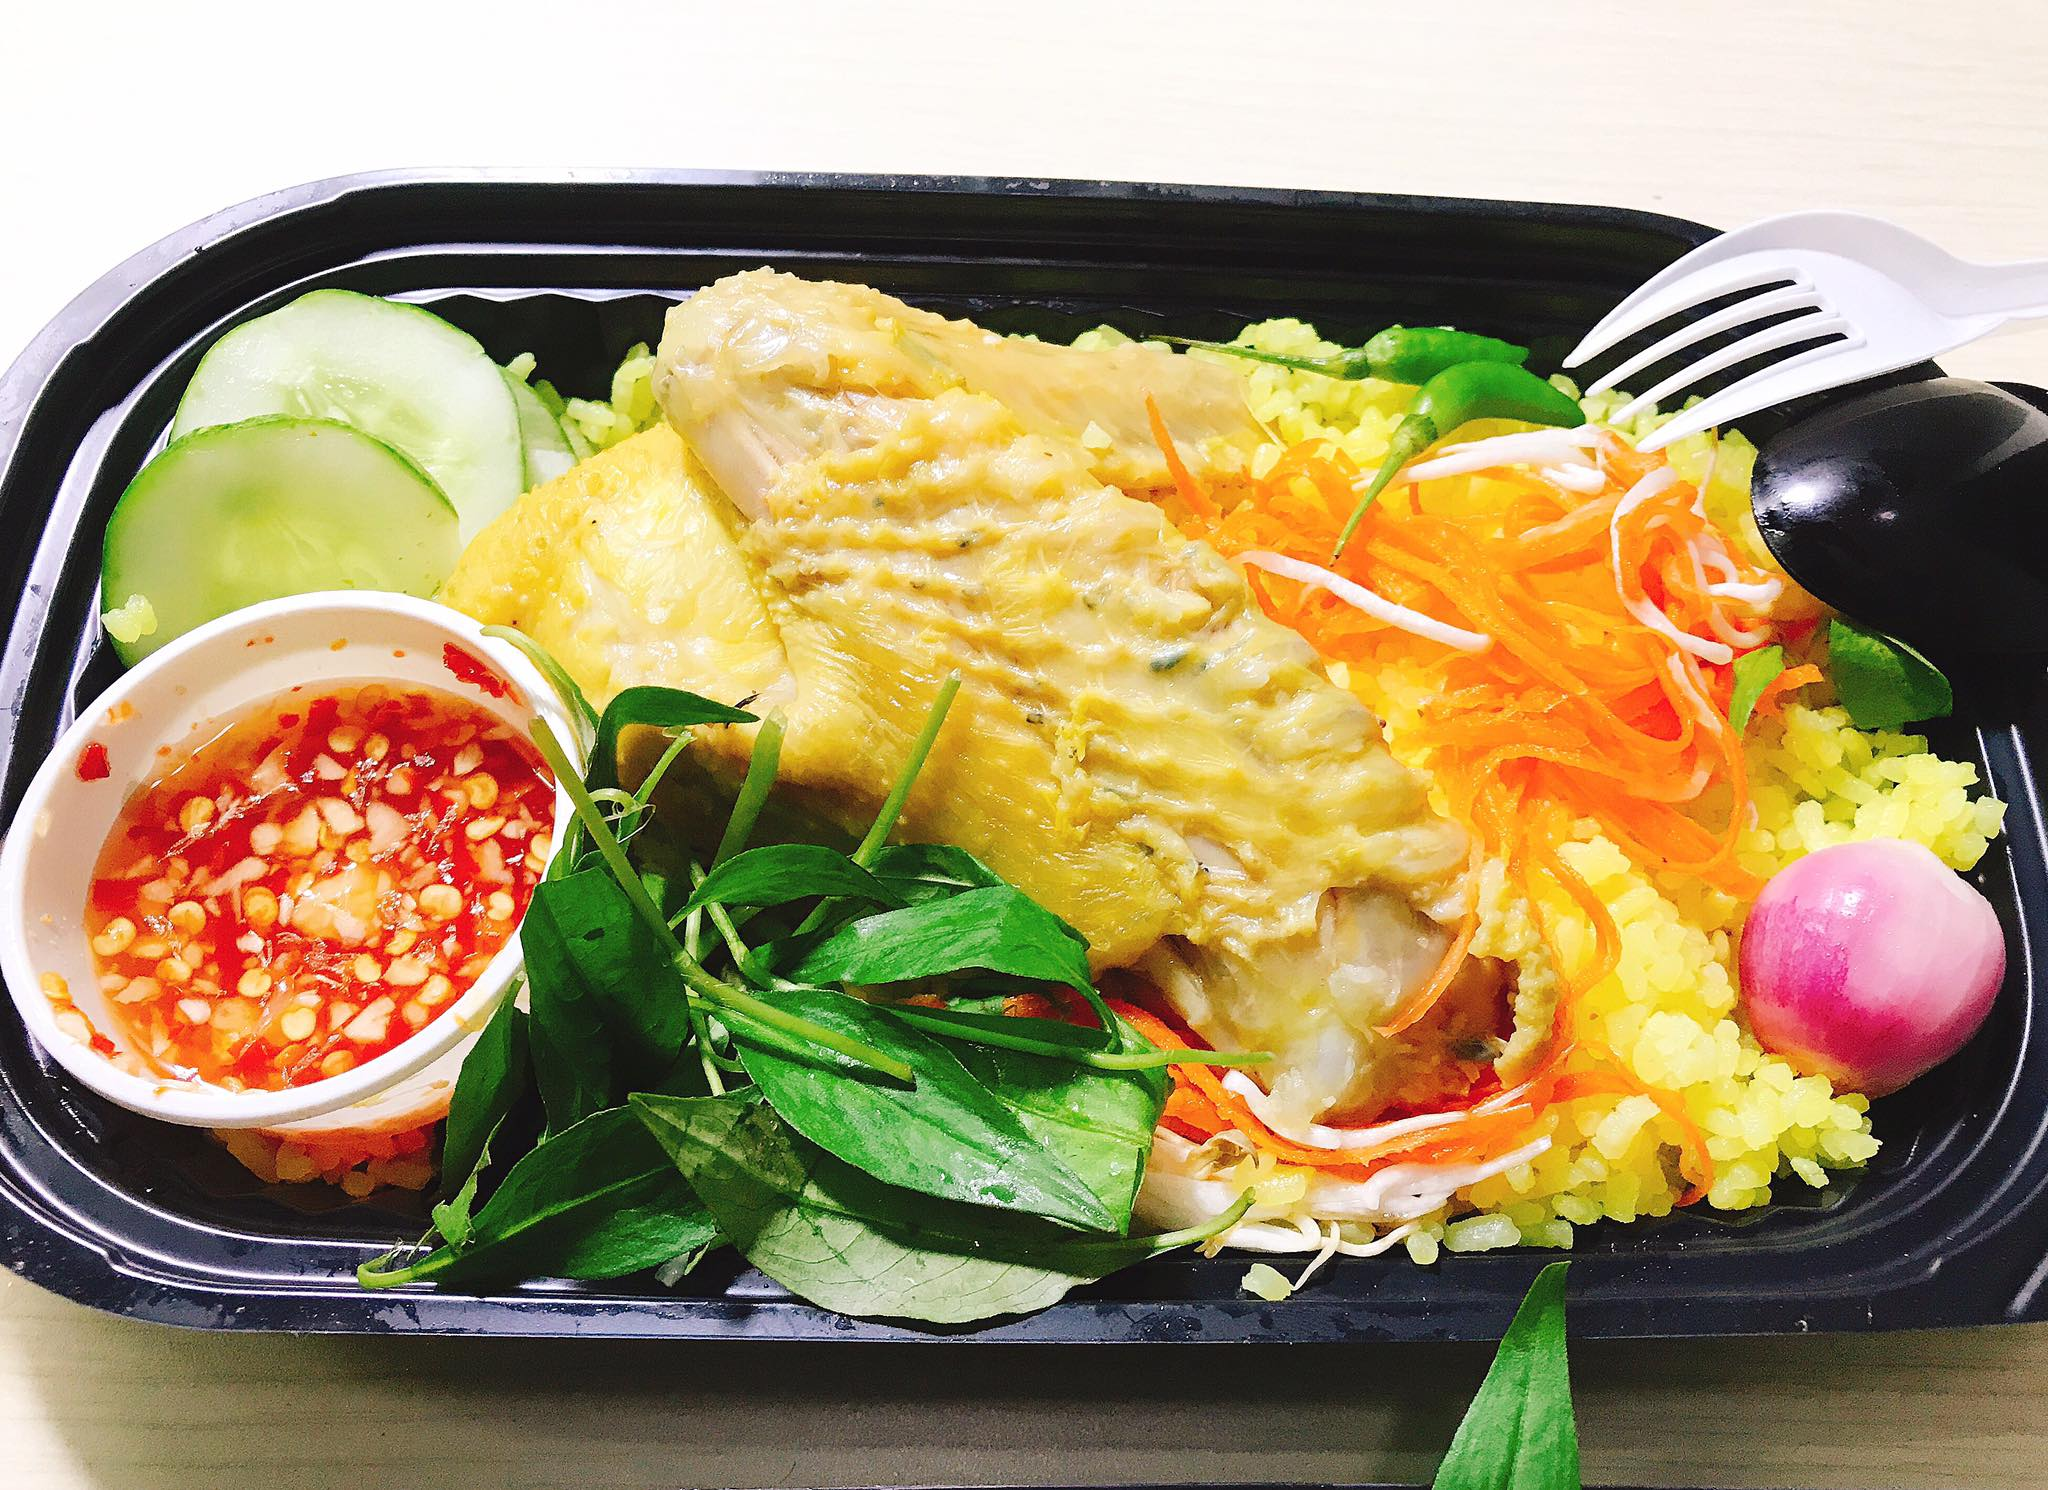 Phu Yen Chicken Rice (Com Ga) - The popular food at Phu Yen Vietnam